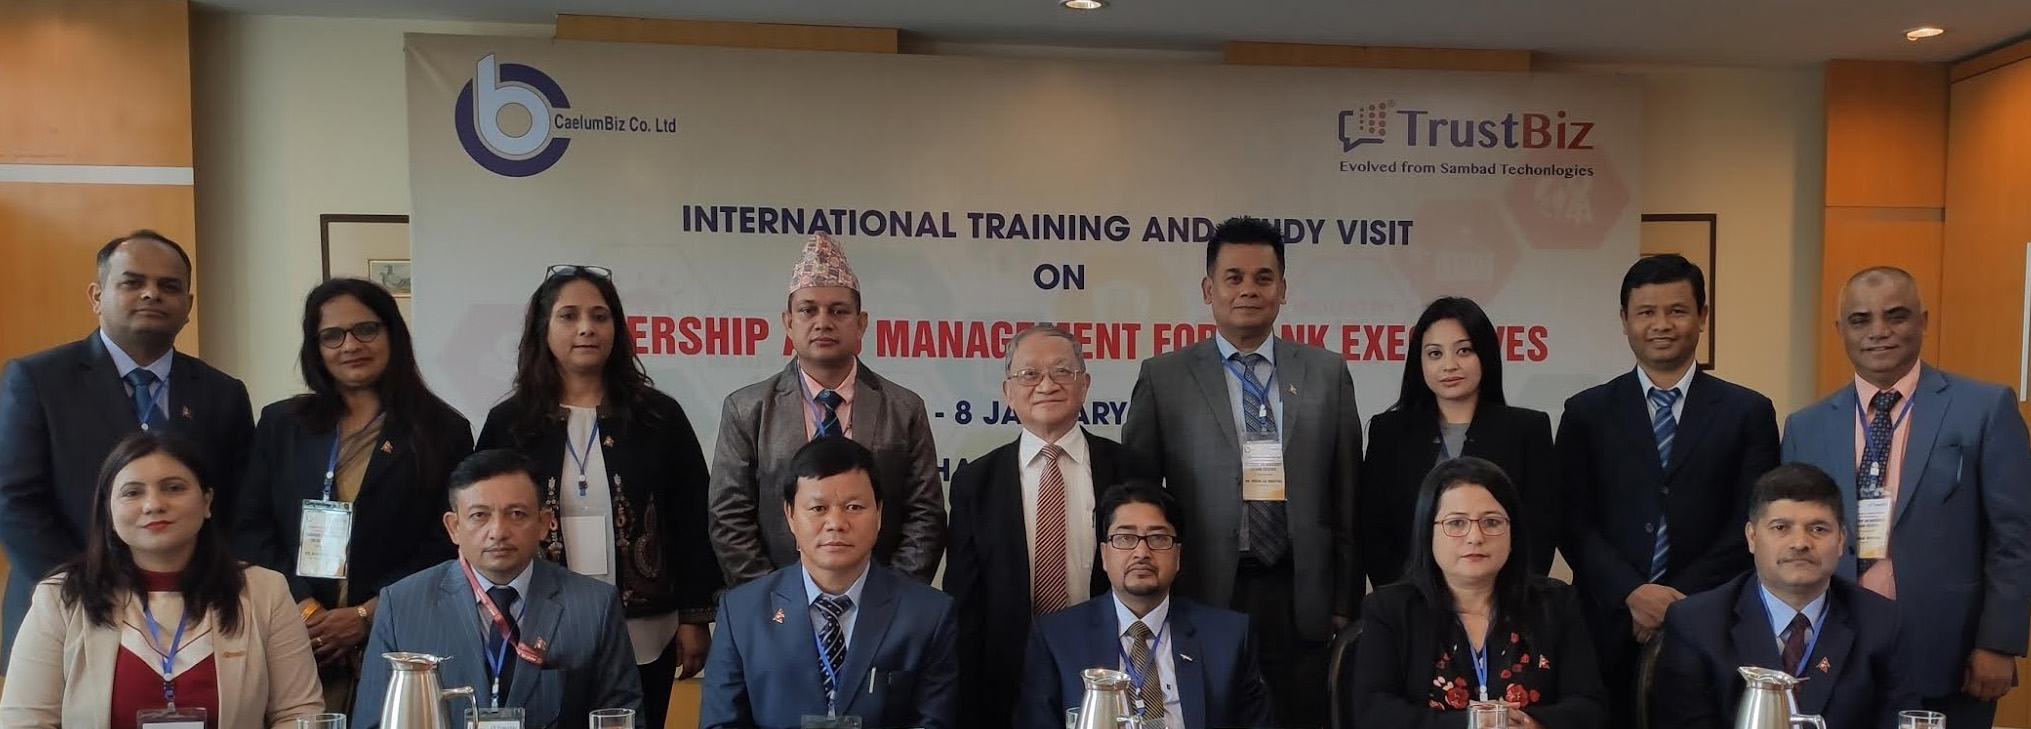 International Training and Study Visit on Leadership and Management for Bank Executives 6-8 January 2020 in Hanoi, Vietnam